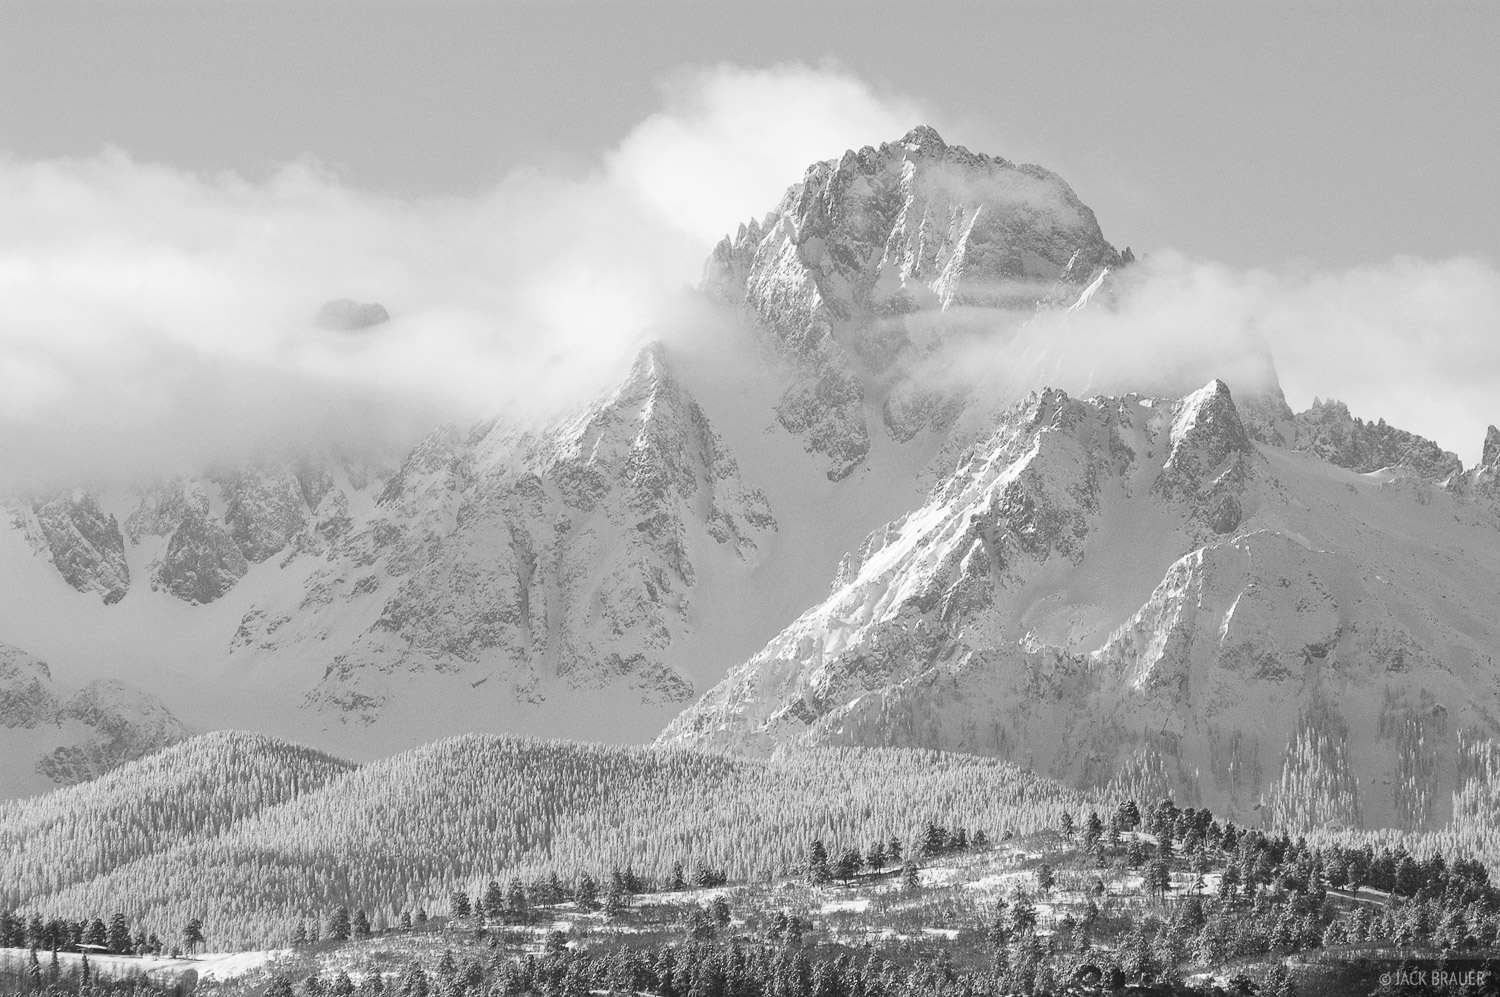 Mt. Sneffels, San Juan Mountains, Colorado, winter, February, photo